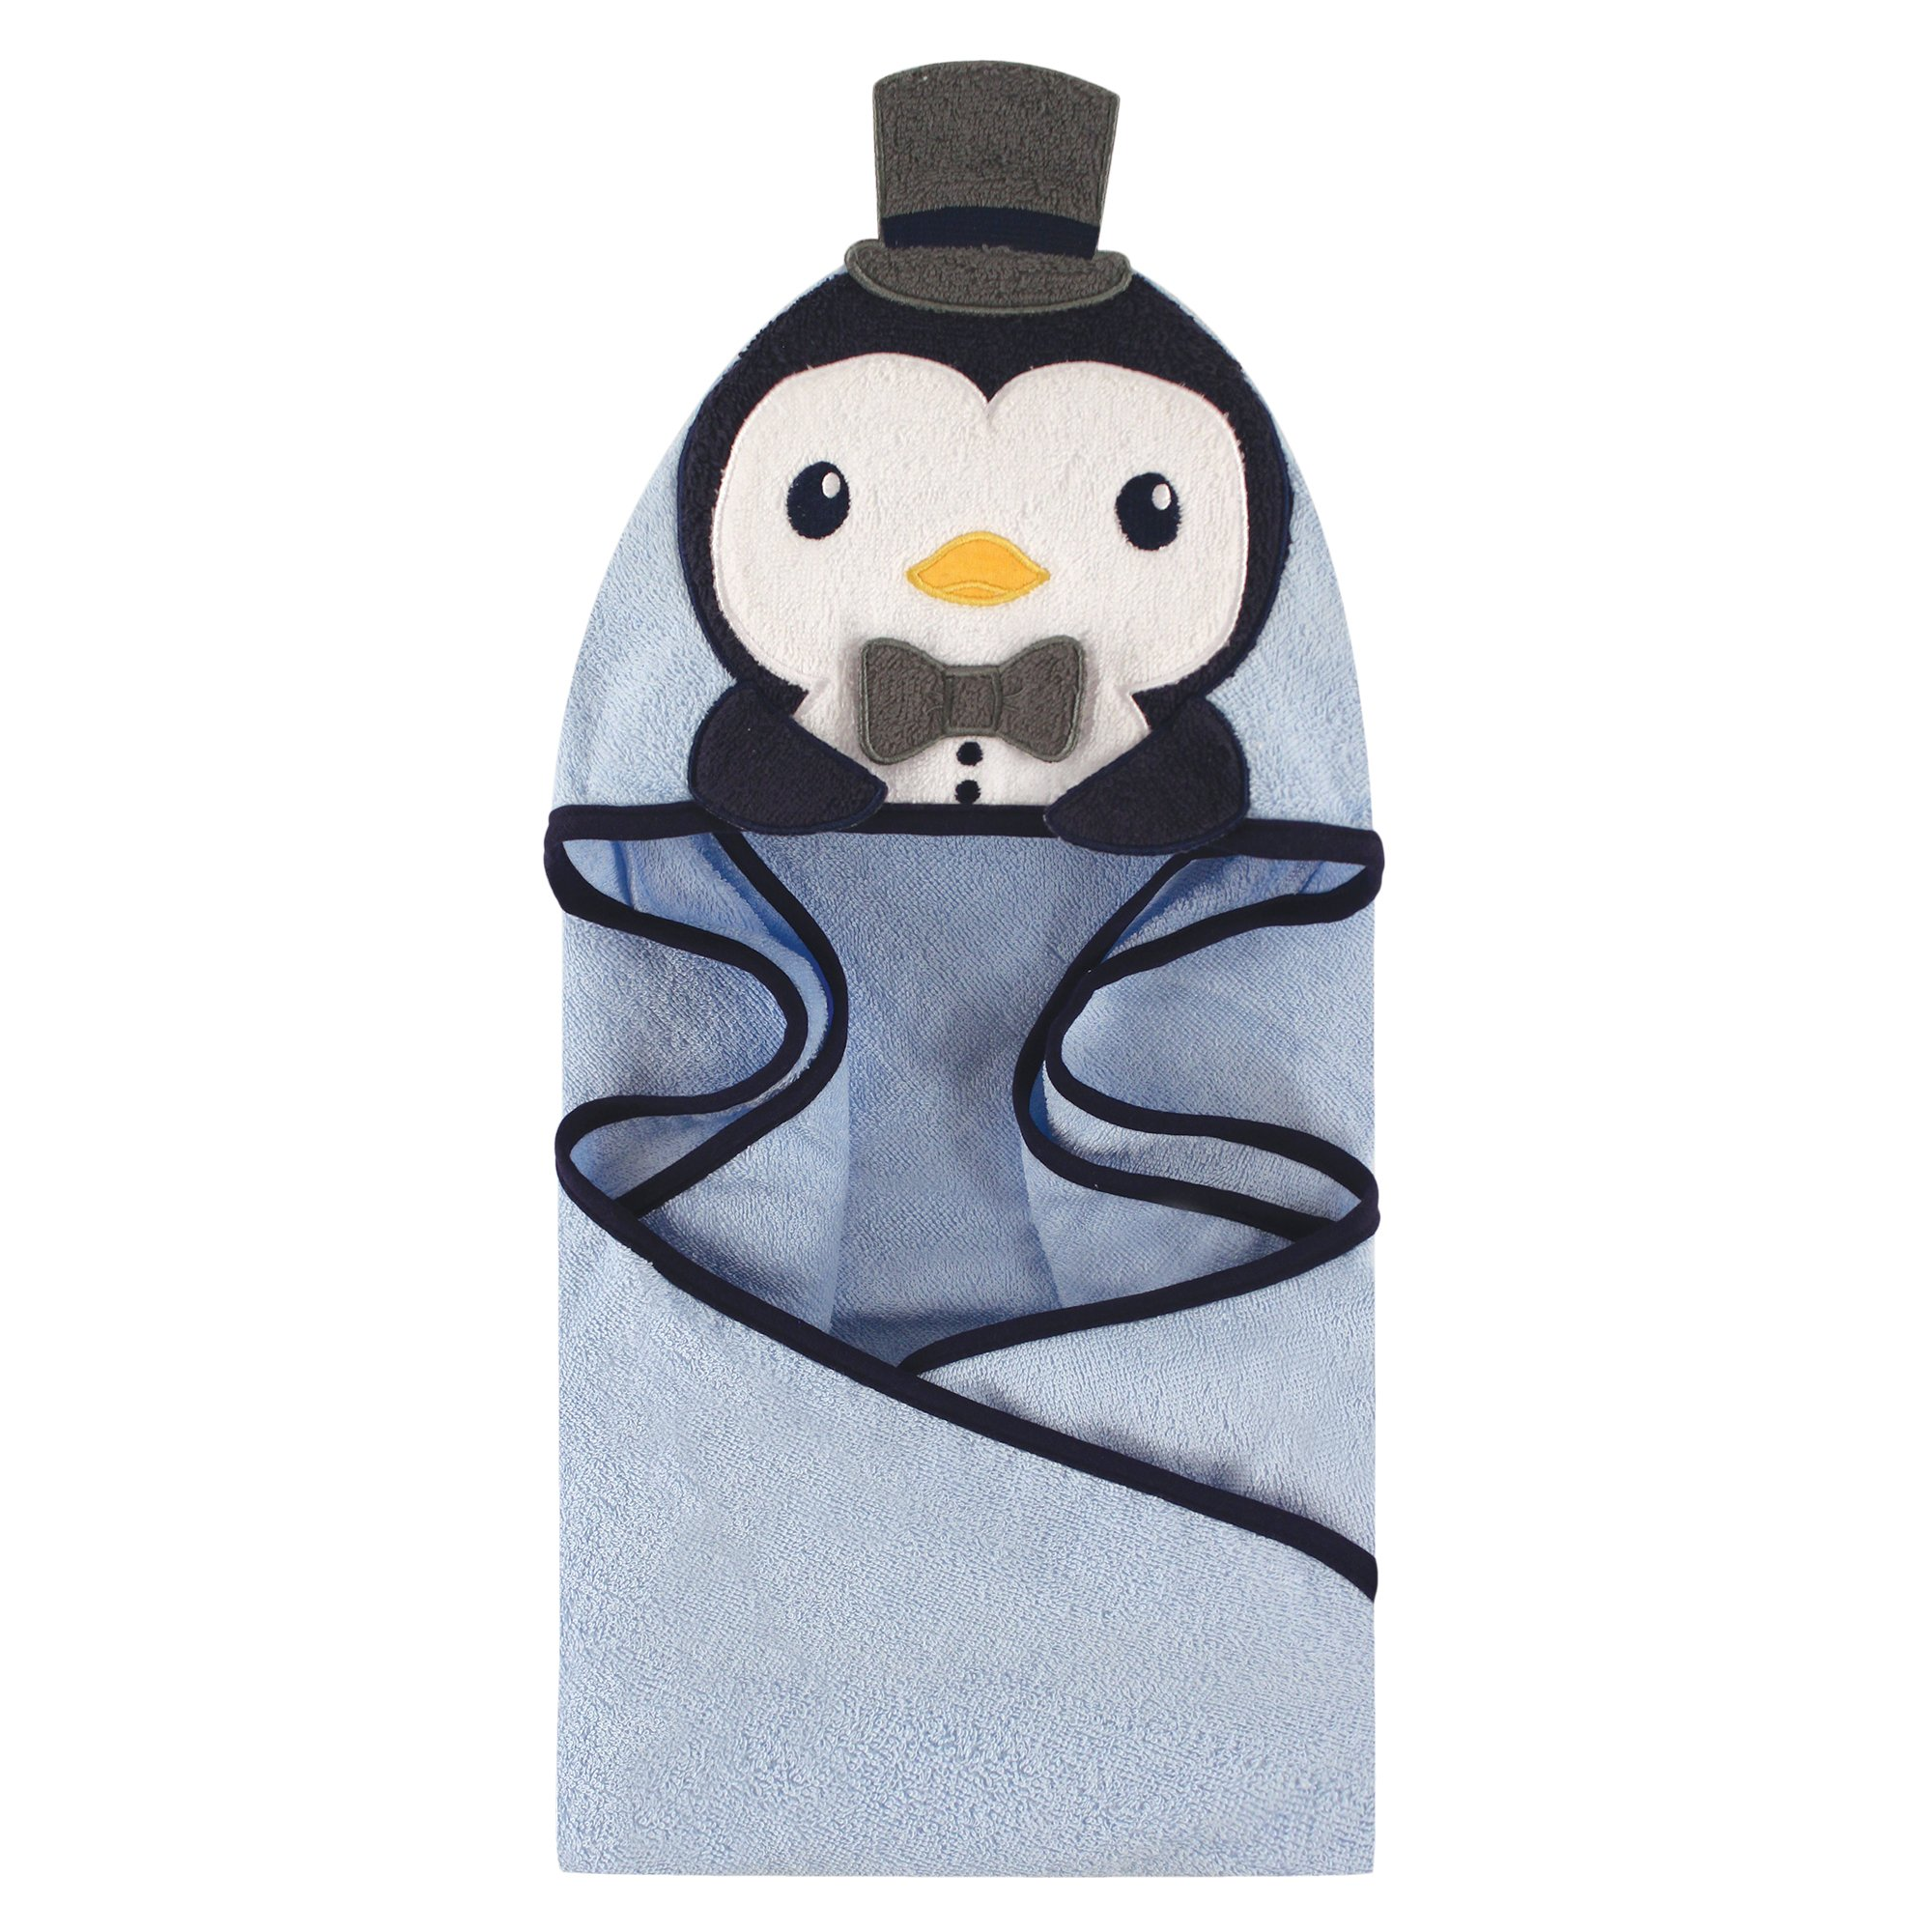 Hudson Baby Animal Face Hooded Towel, Handsome Penguin